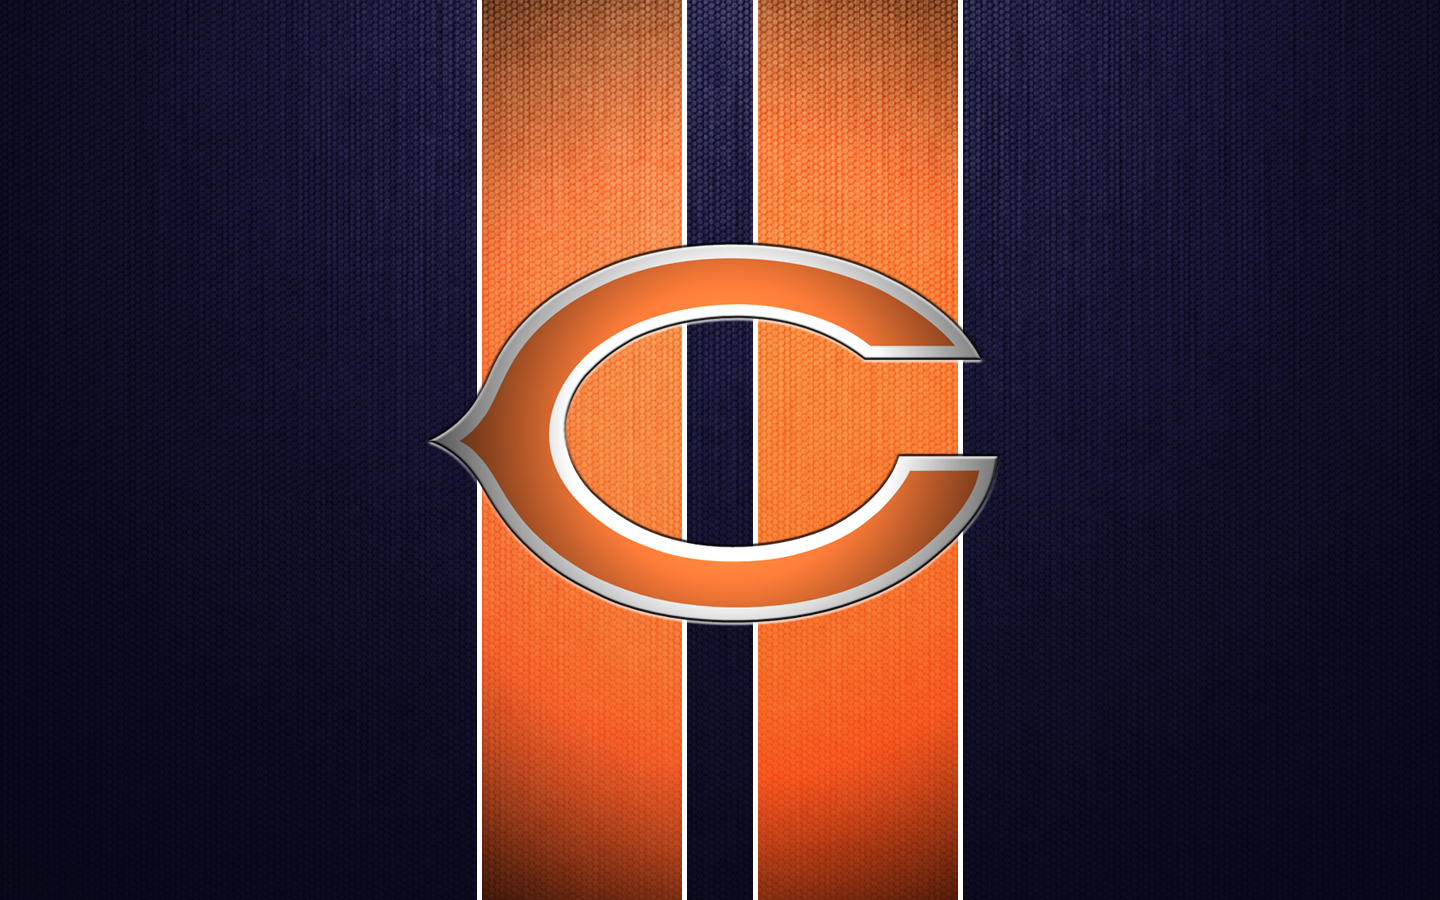 Chicago Bears wallpaper 1440x900 53937 1440x900